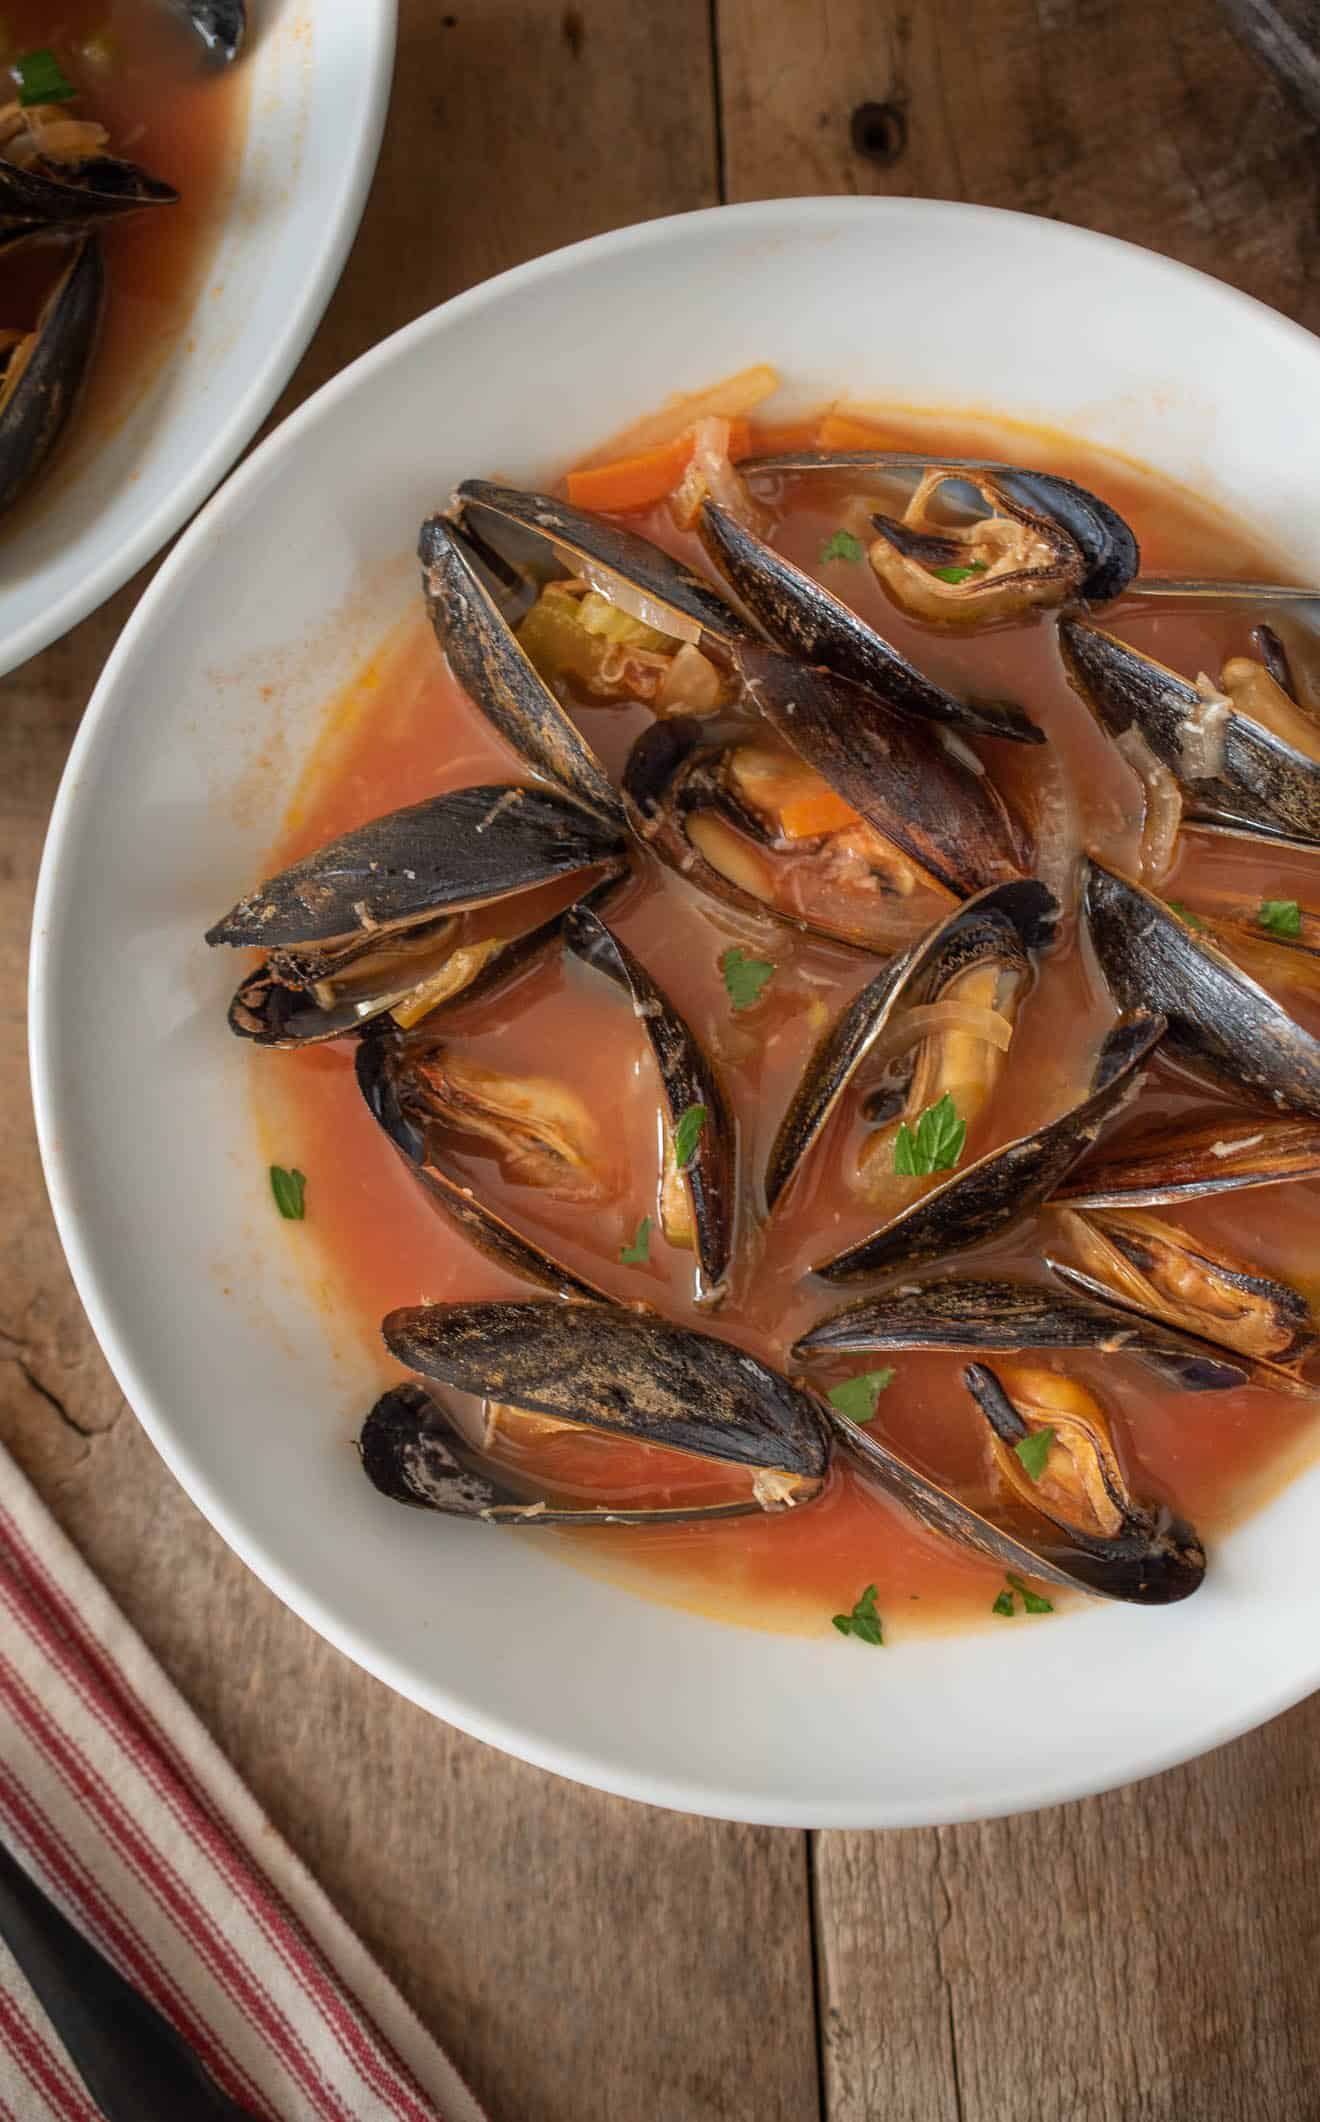 A closeup showing the mussels in their shells garnished with parsley